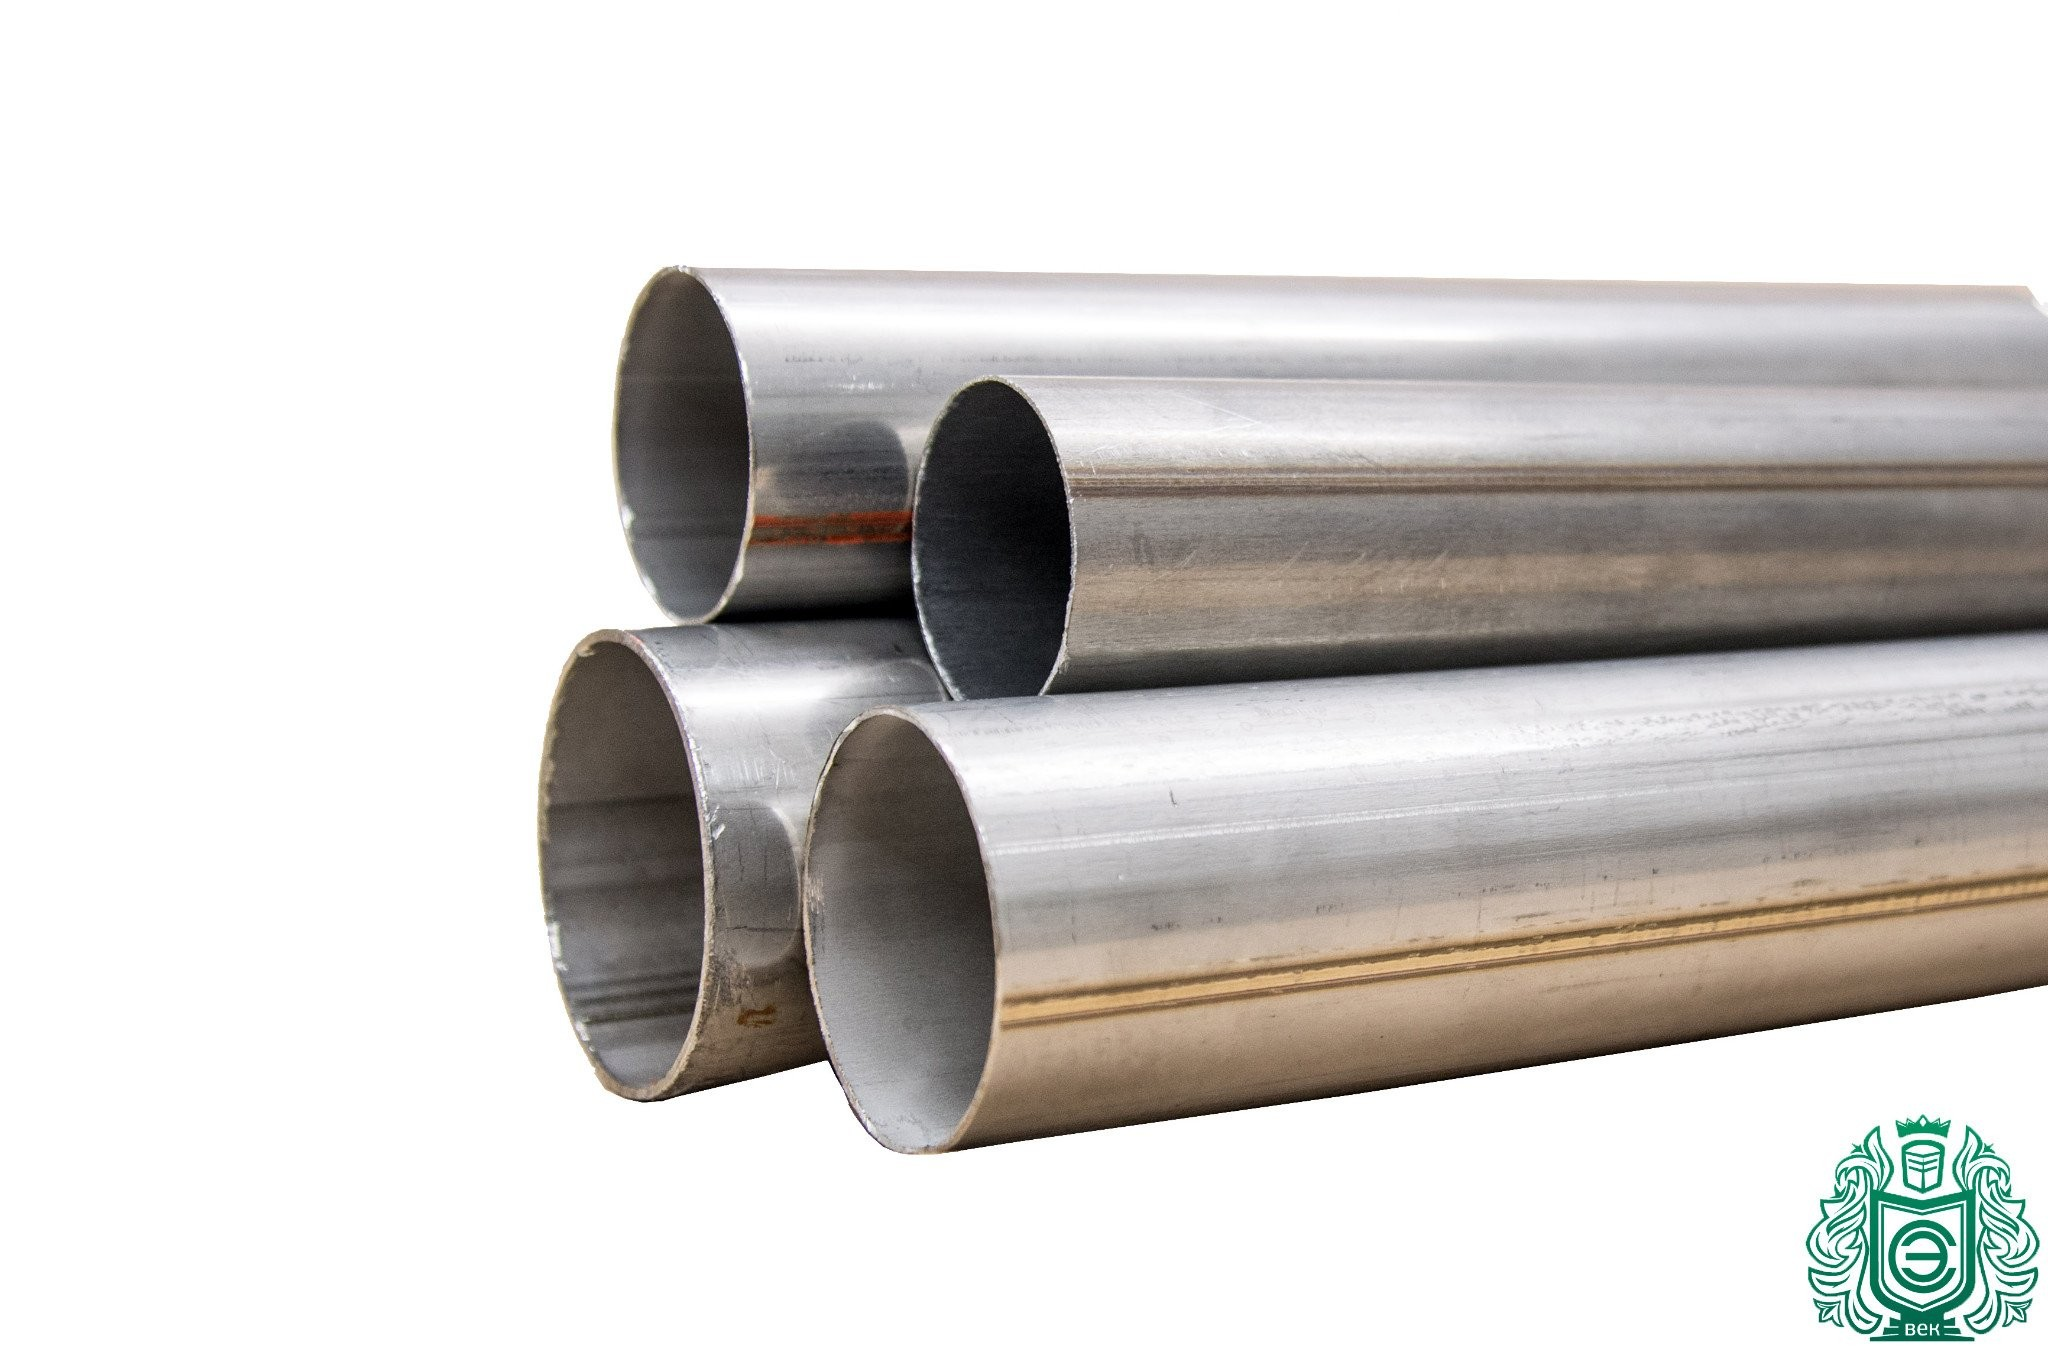 Stainless Steel Pipe/  / /Ø 40/ mm x 500/ mm 0,5/ m V2/ A Exhaust Tube 1.4301